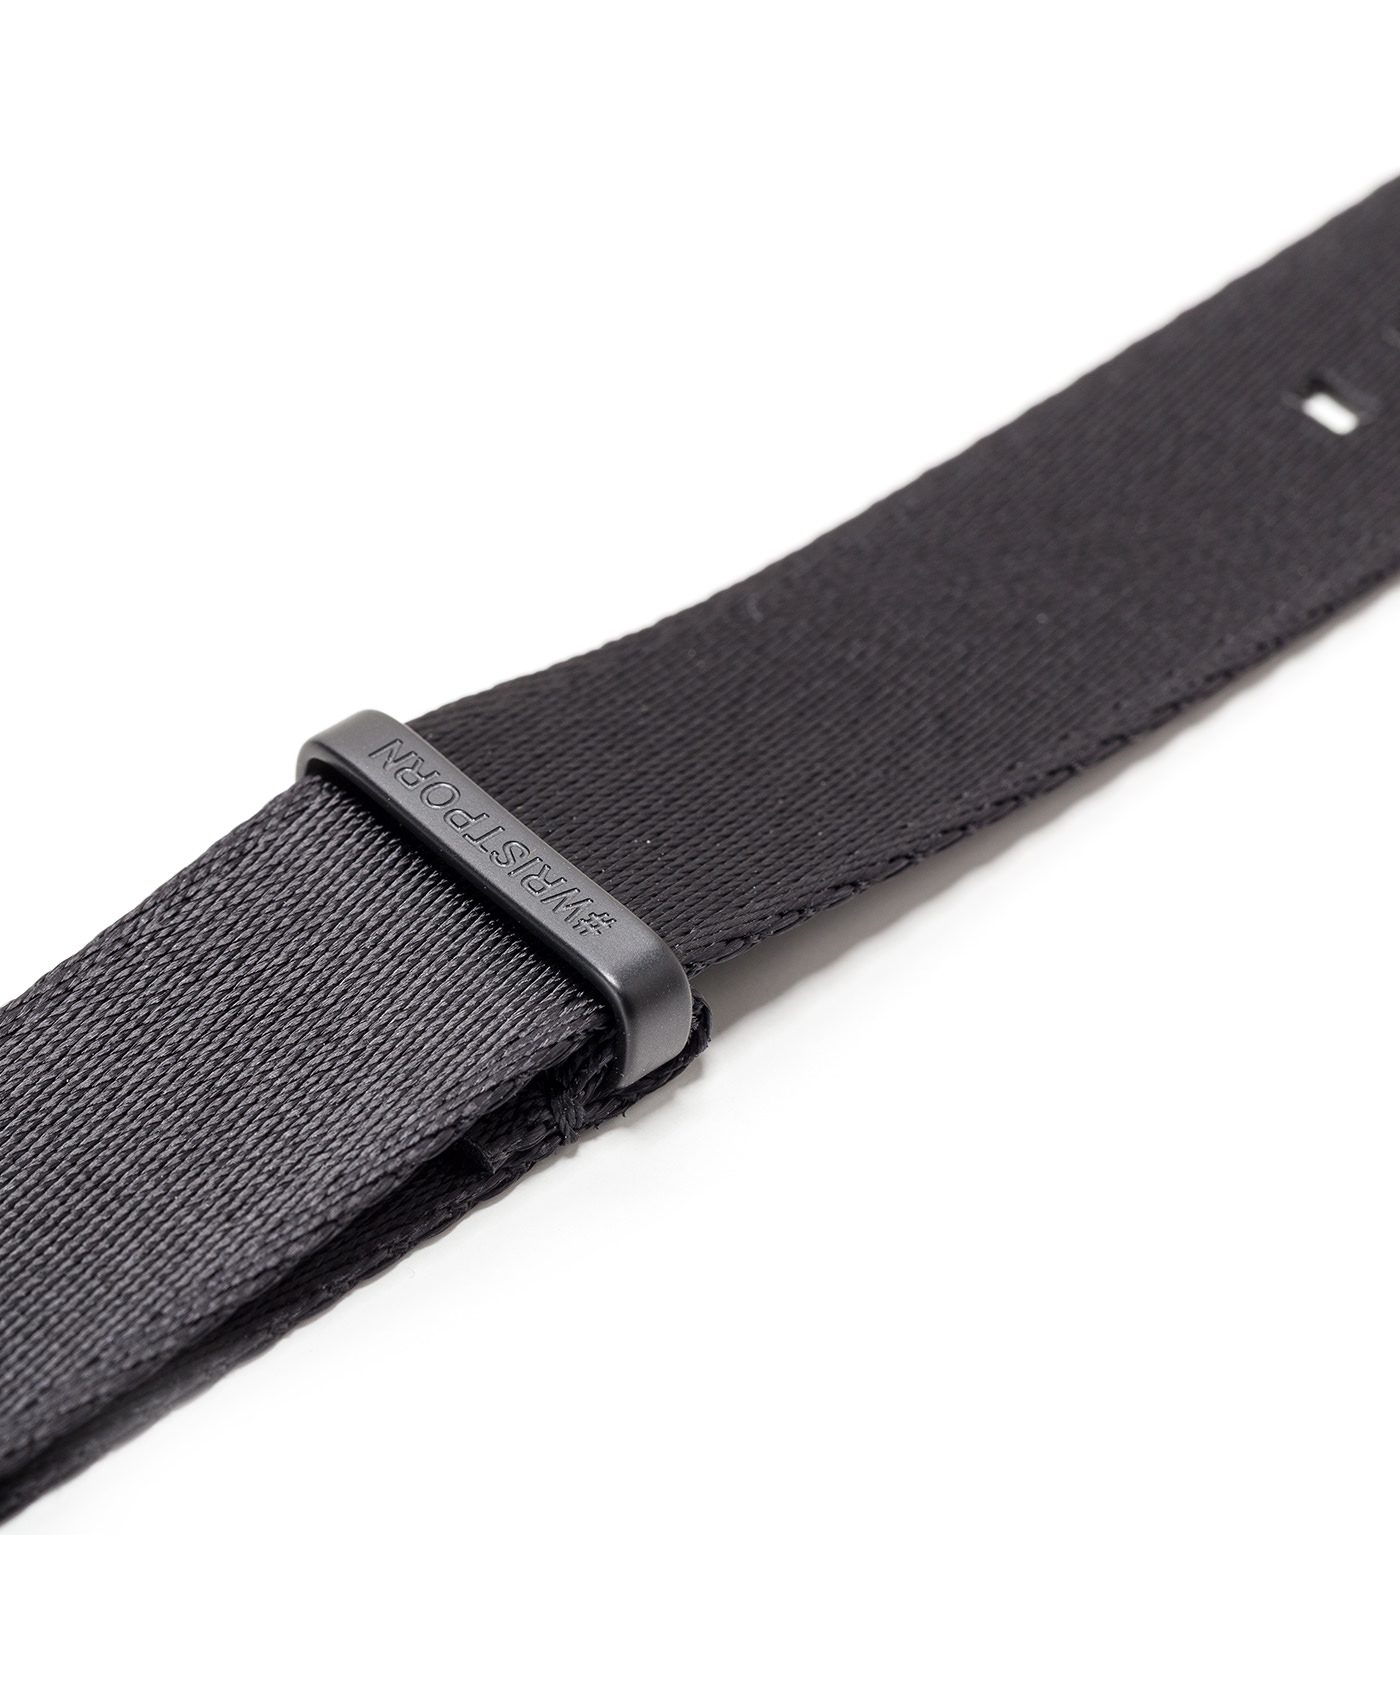 Watchbandit WB original Wristporn Nato strap in black with black buckle close up